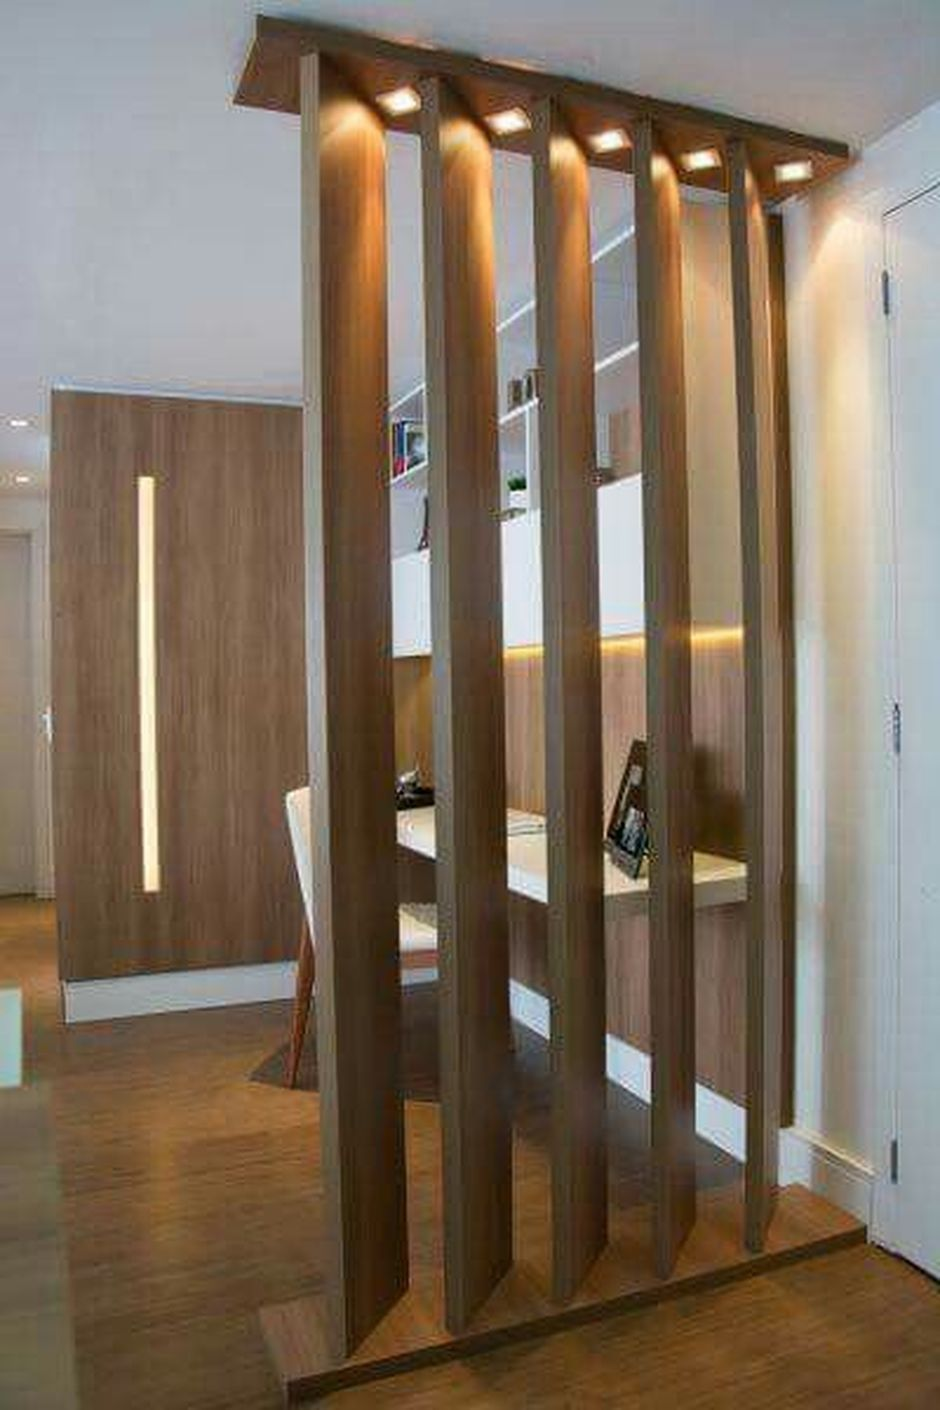 This Is 90 Inspiring Room Dividers And Separator Design 53 Image You Can Read And See Another Ama Living Room Partition Design Partition Design Divider Design